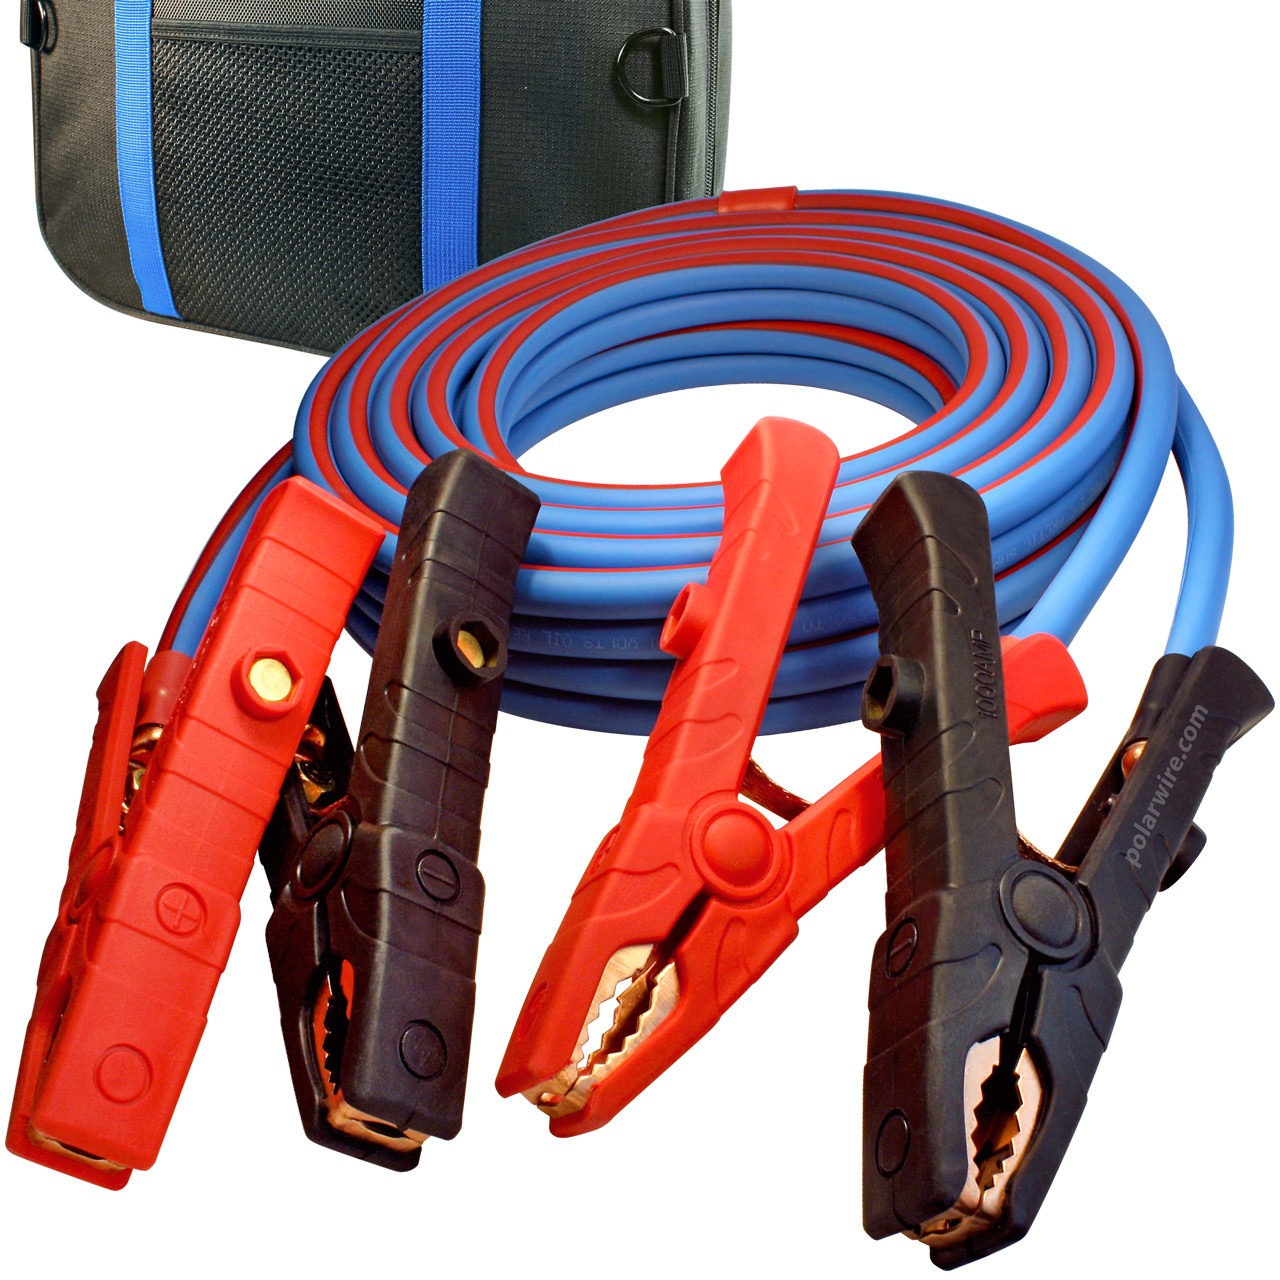 Trailer Light Cable Wiring Harness 4 Gauge 2 Wire Bonded Jumper Booster Cables